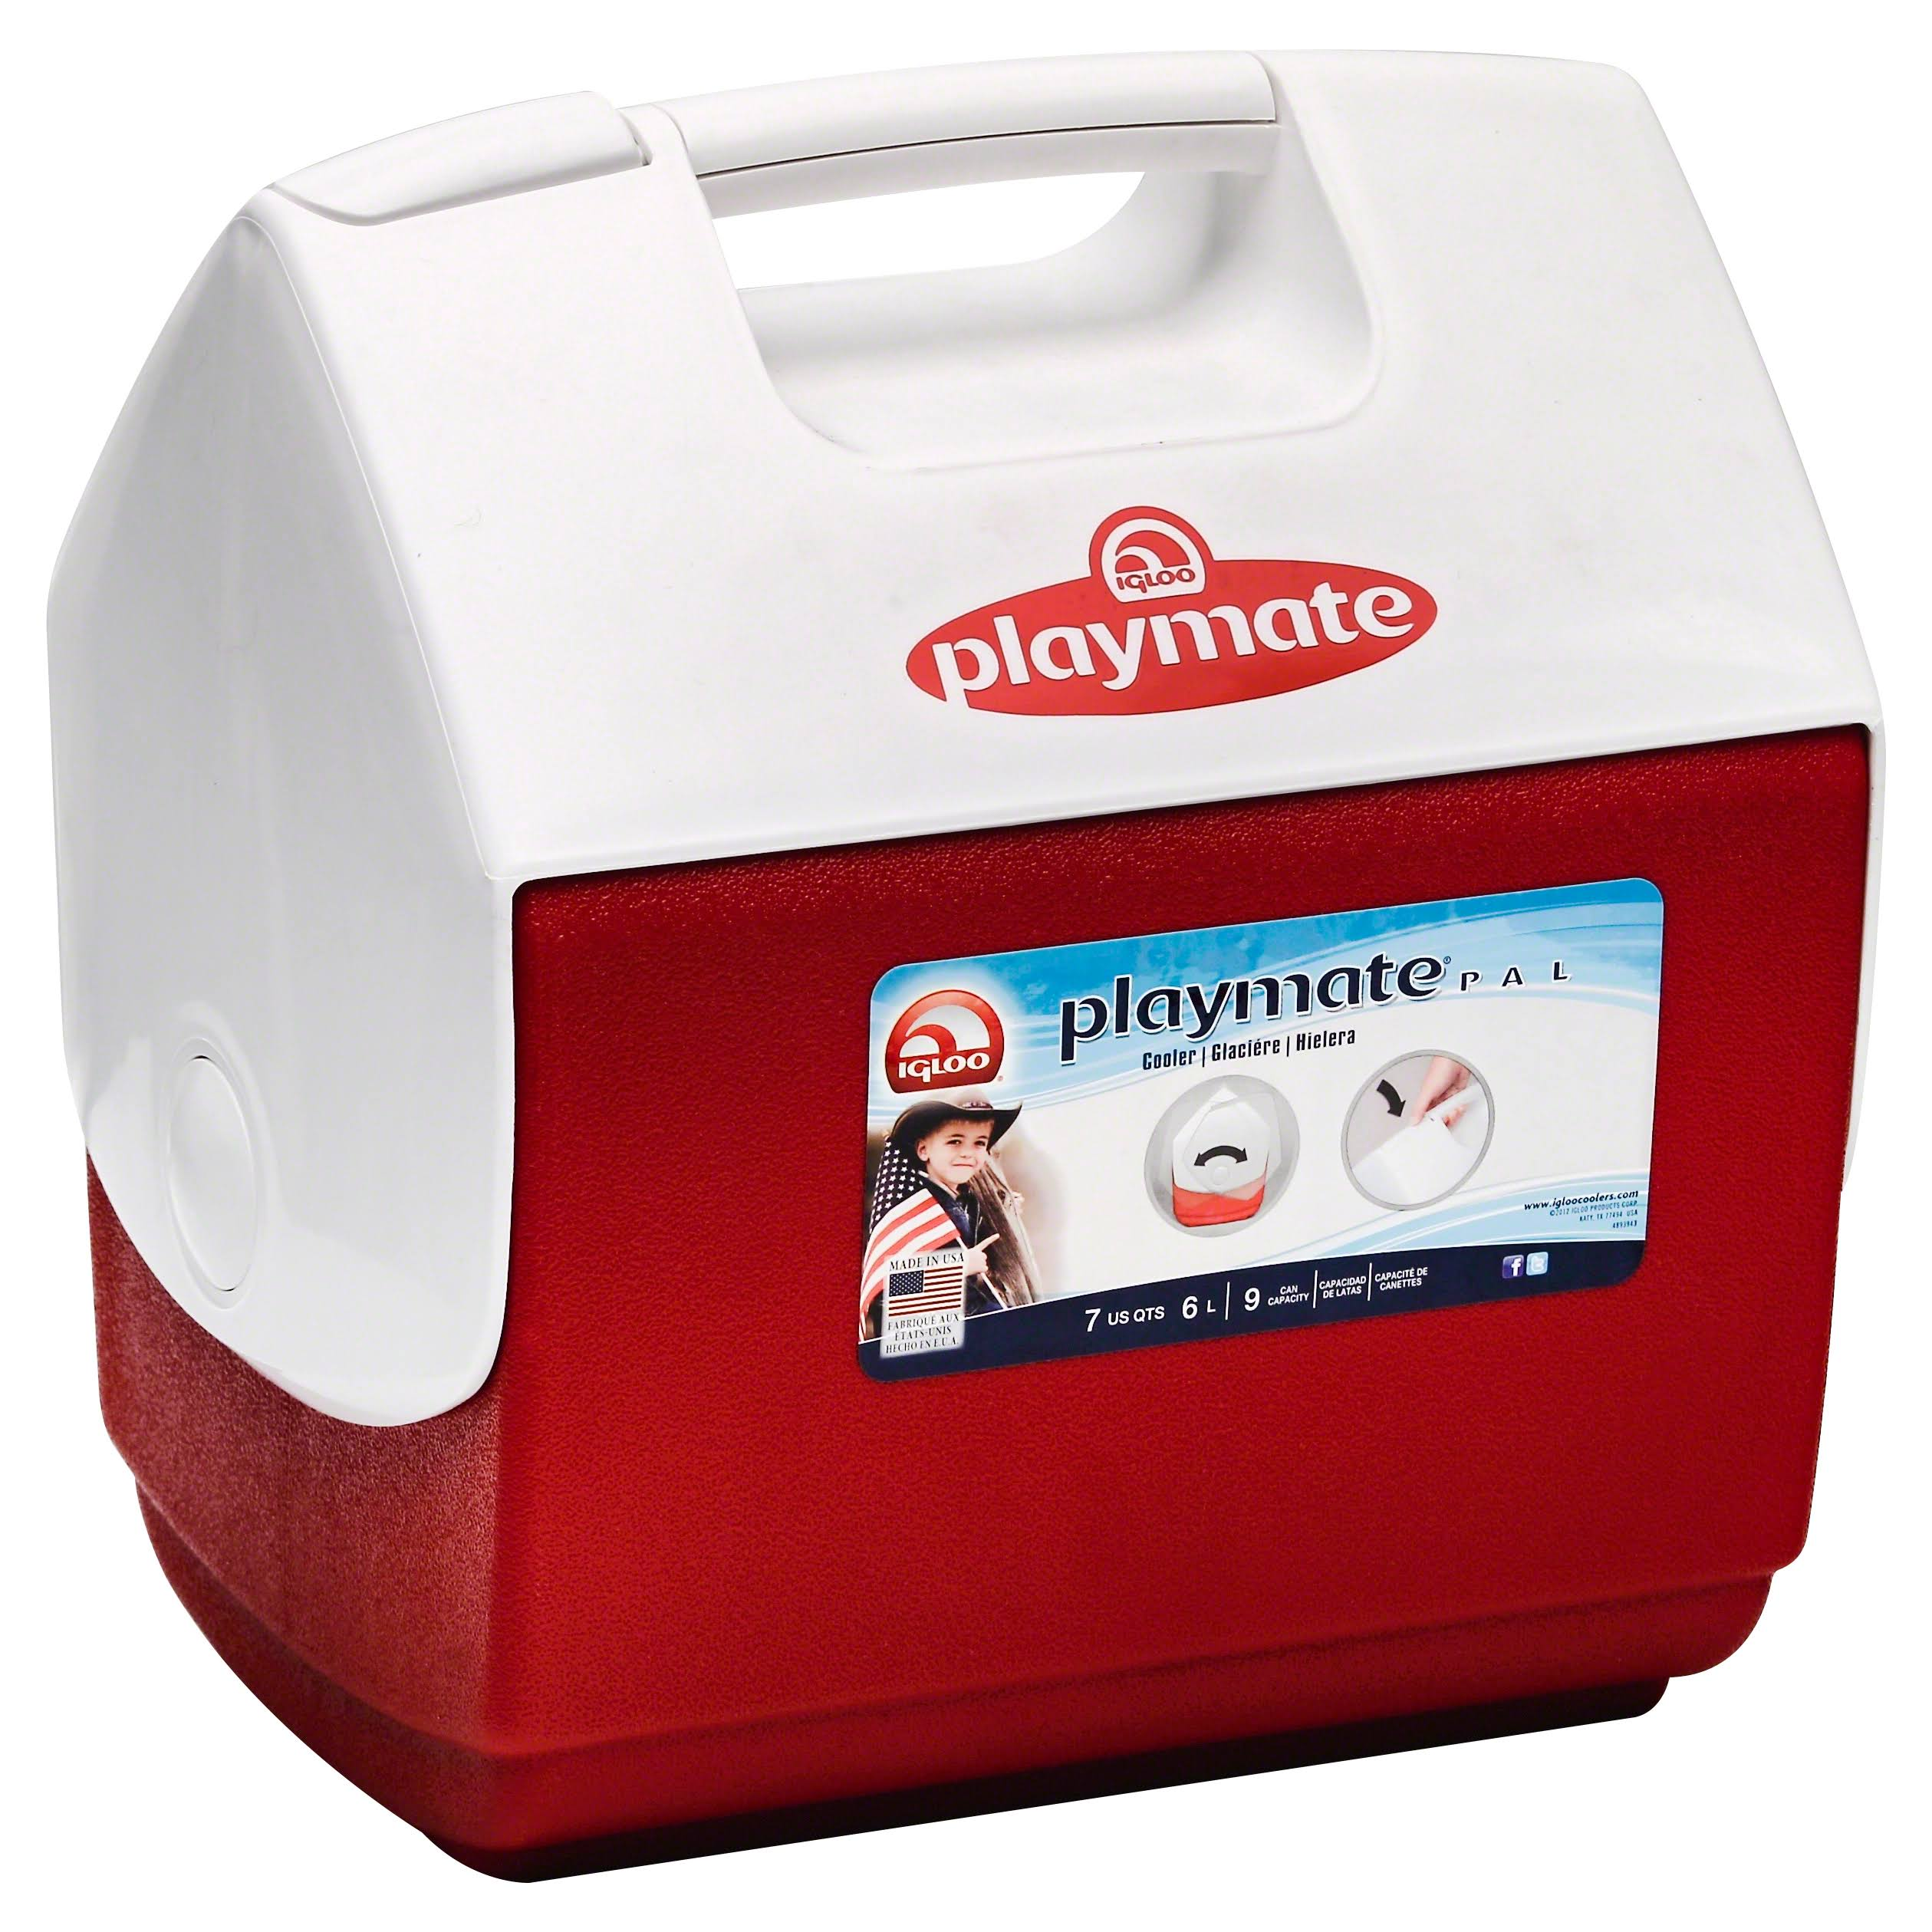 "Igloo Playmate Pal Personal Sized Cooler - Red, White, 11.75"" X 8.25"" X 12"""